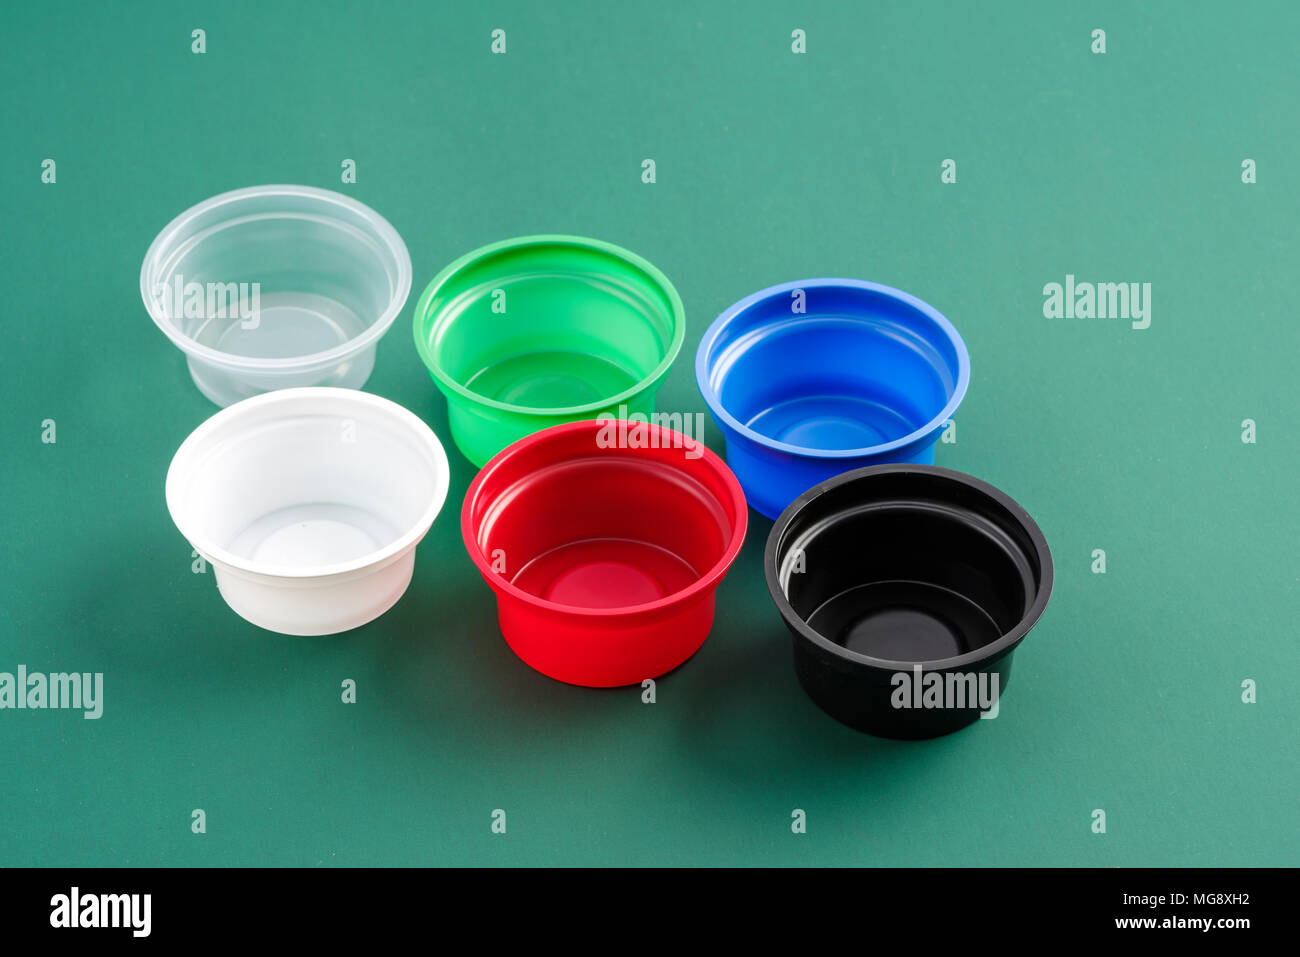 plastic containers for eating different colors - Stock Image